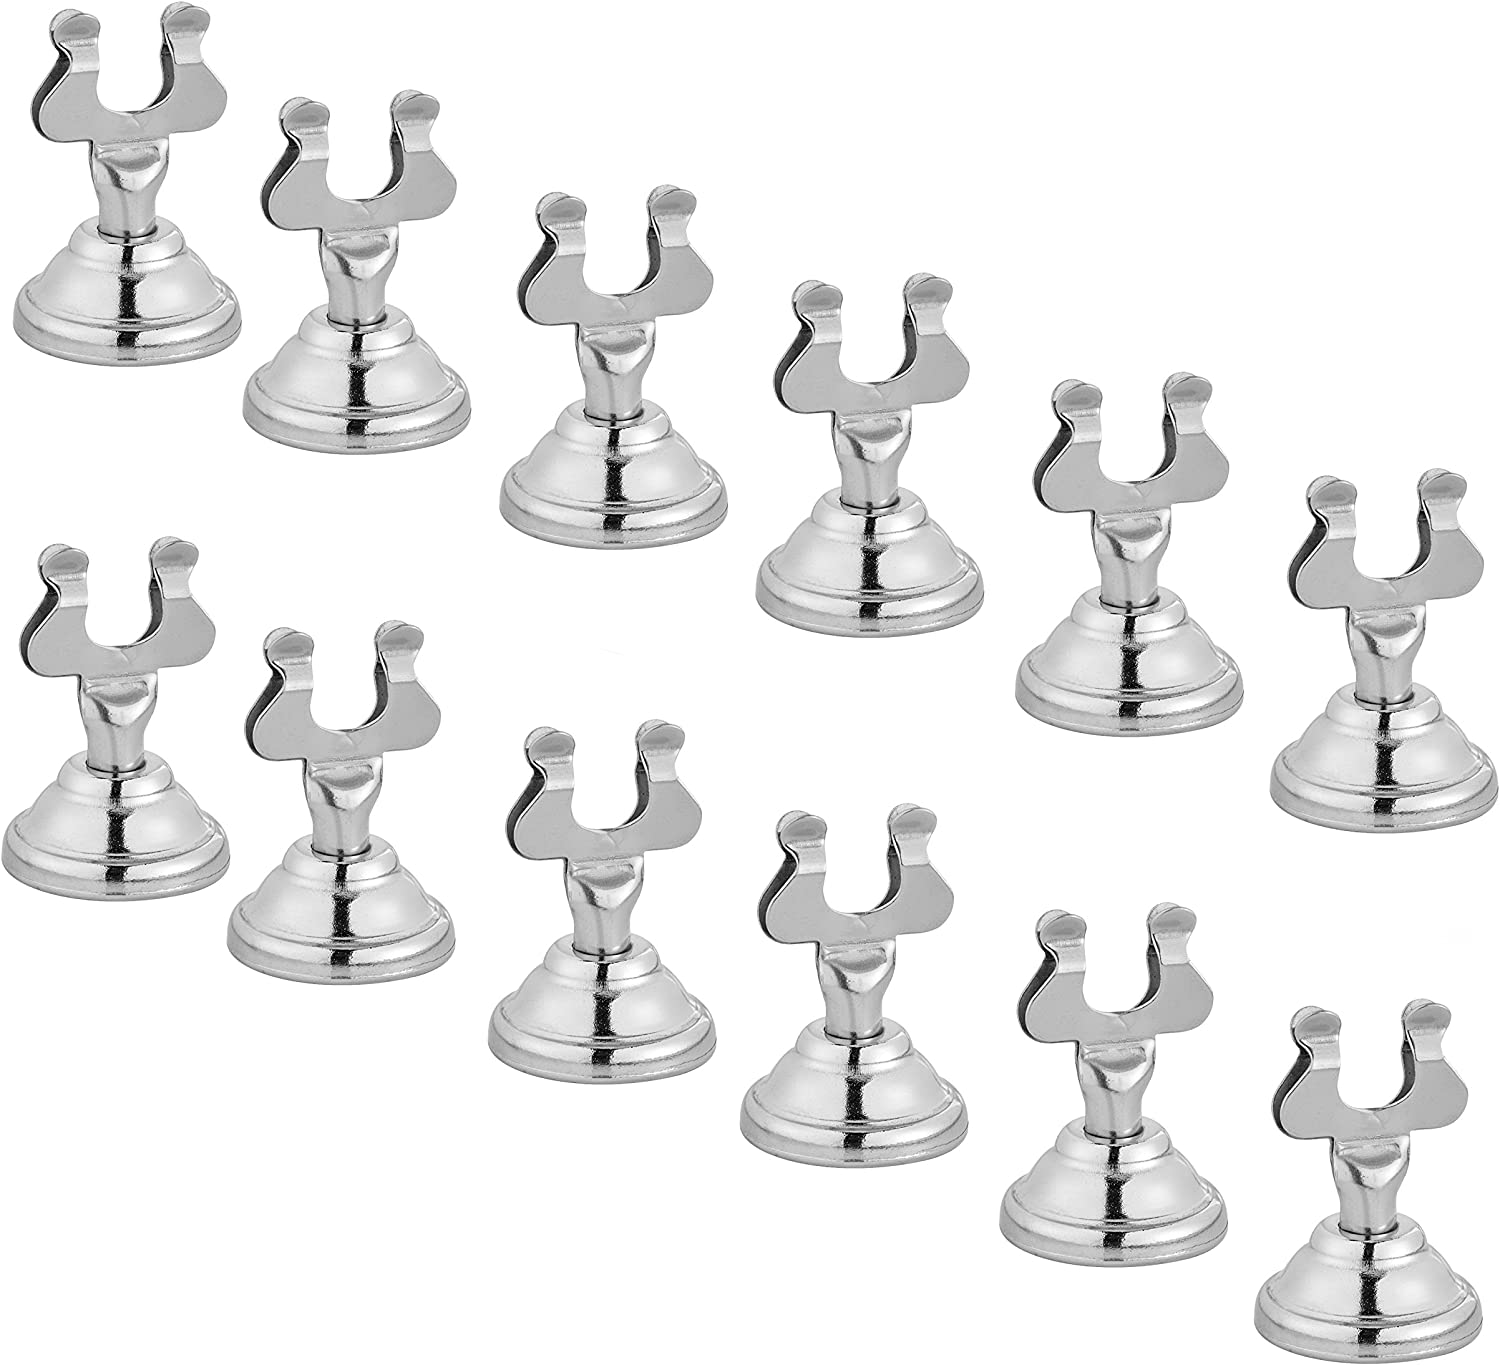 Alpine Industries Harp Style Place Card/Table Number Holder - Silver (12 Pack)